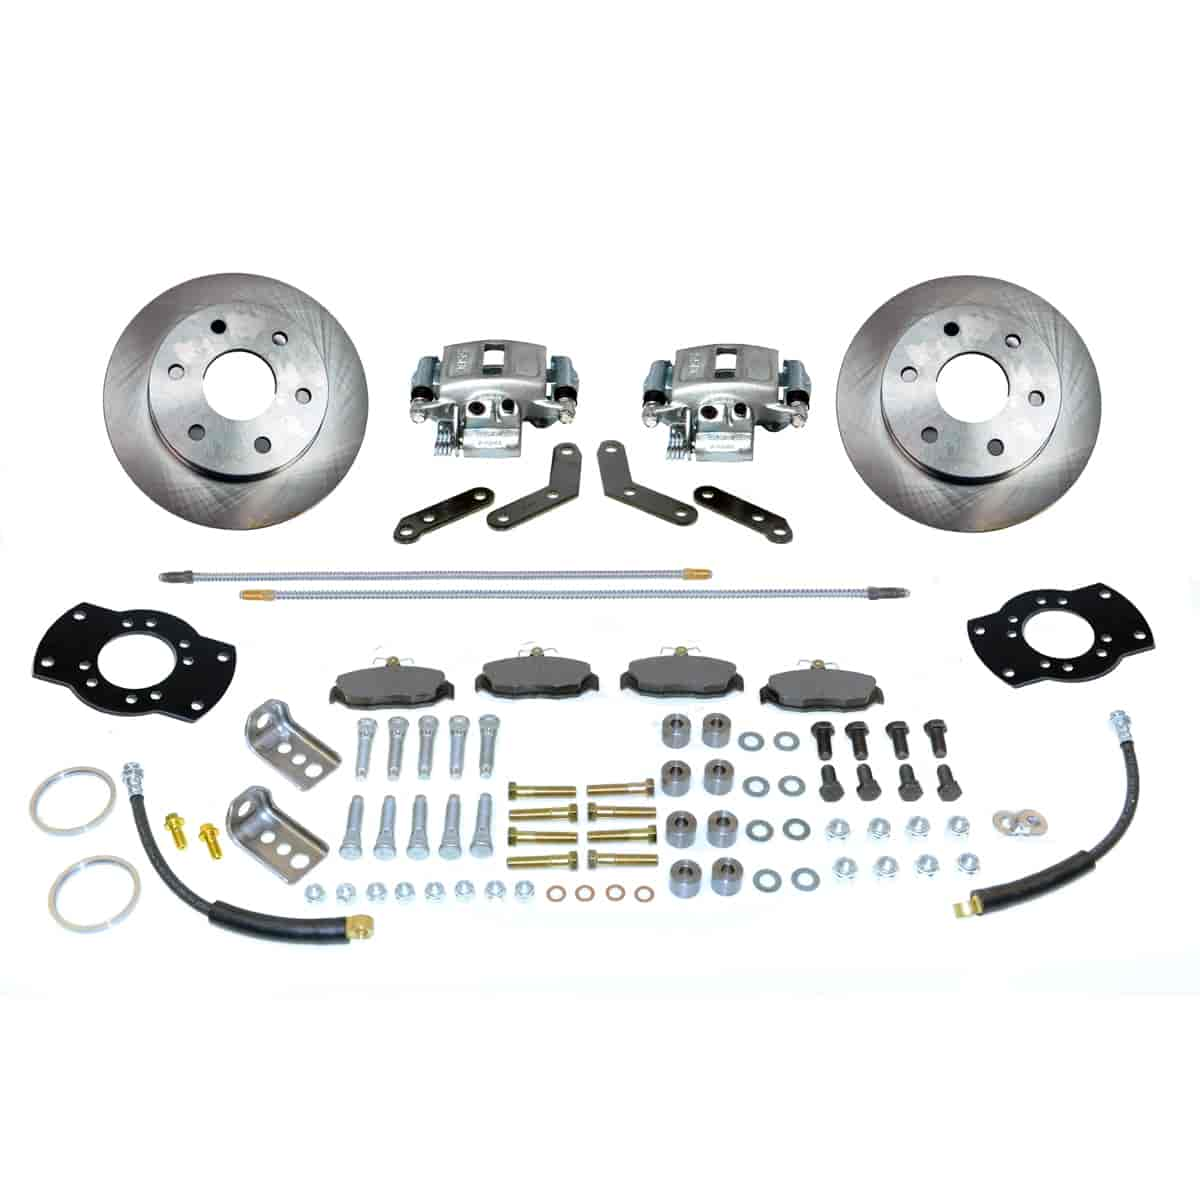 Stainless Steel Brakes A126 - Stainless Steel Brakes Single Piston Rear Drum to Disc Brake Conversion Kits